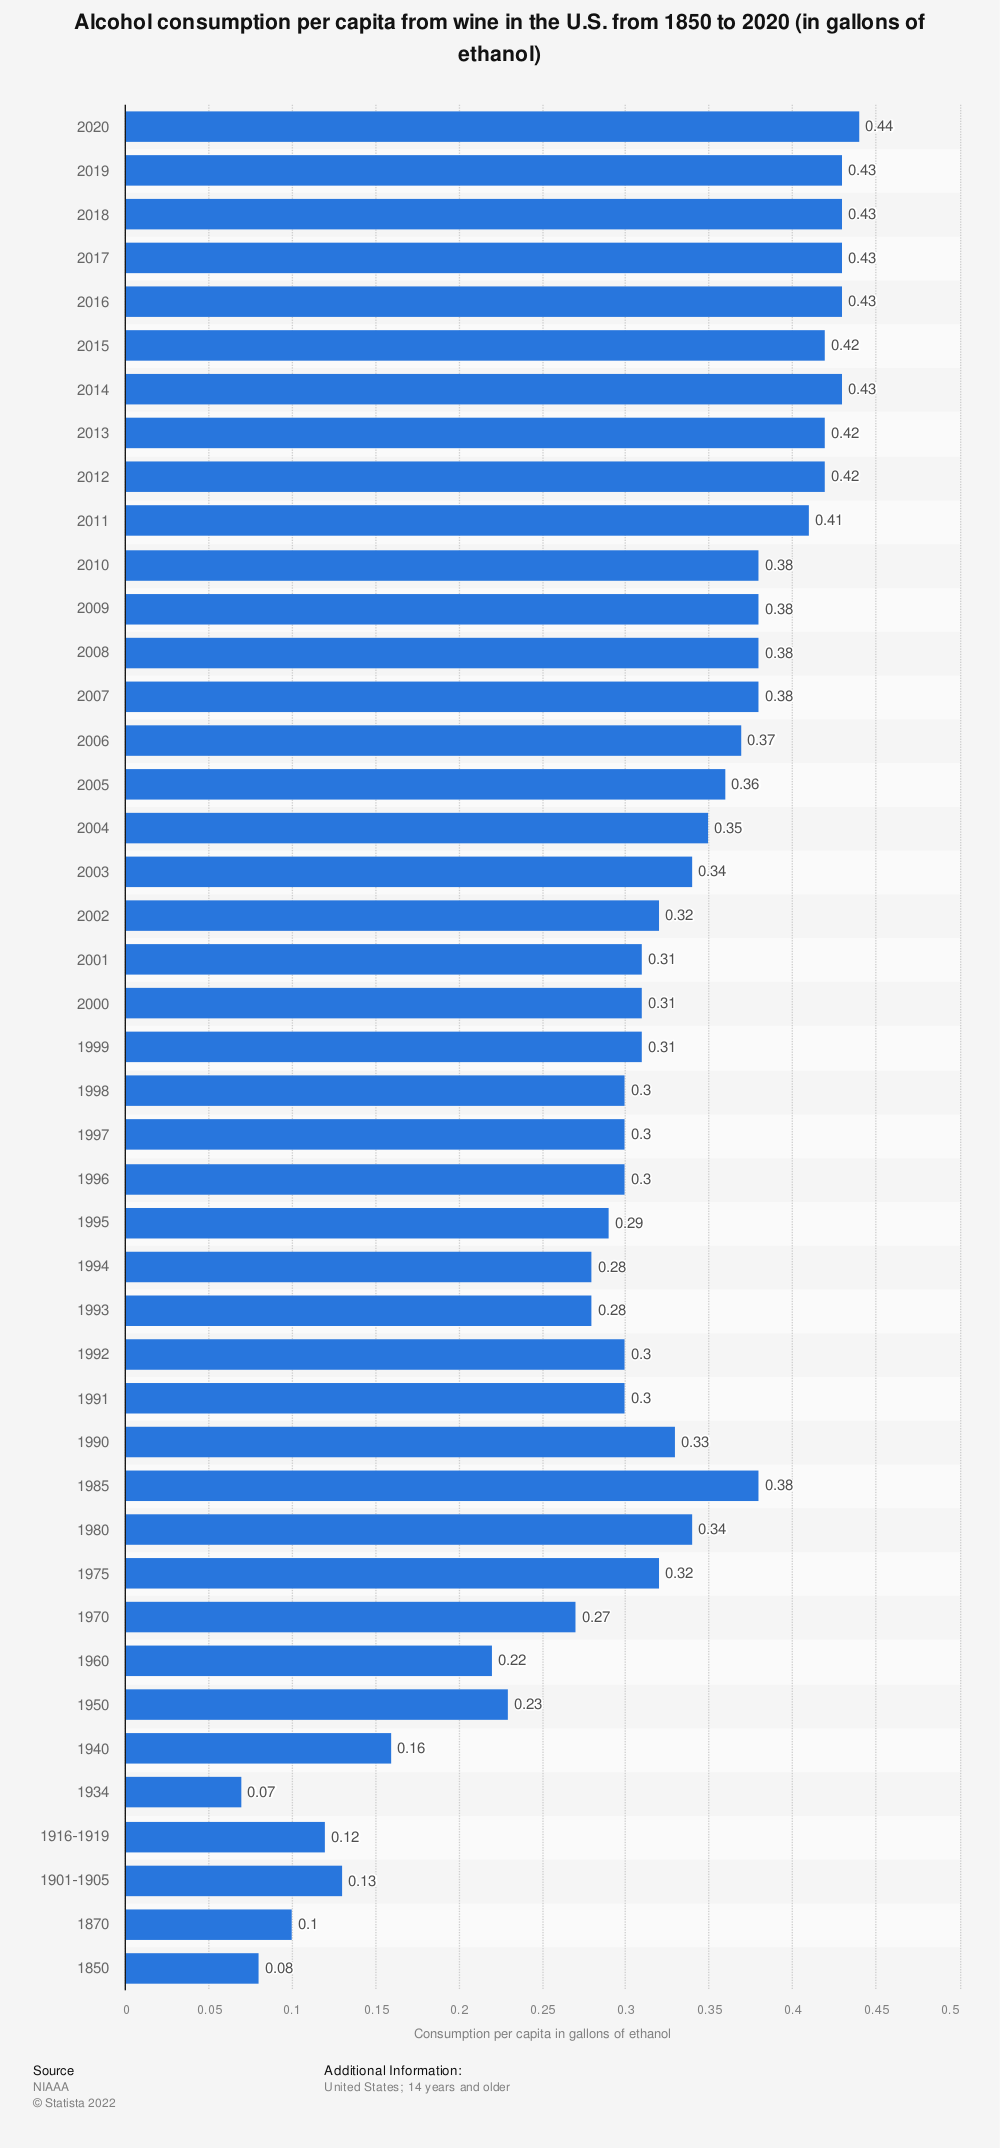 Statistic: Alcohol consumption per capita from wine in the U.S. from 1850 to 2017 (in gallons of ethanol) | Statista